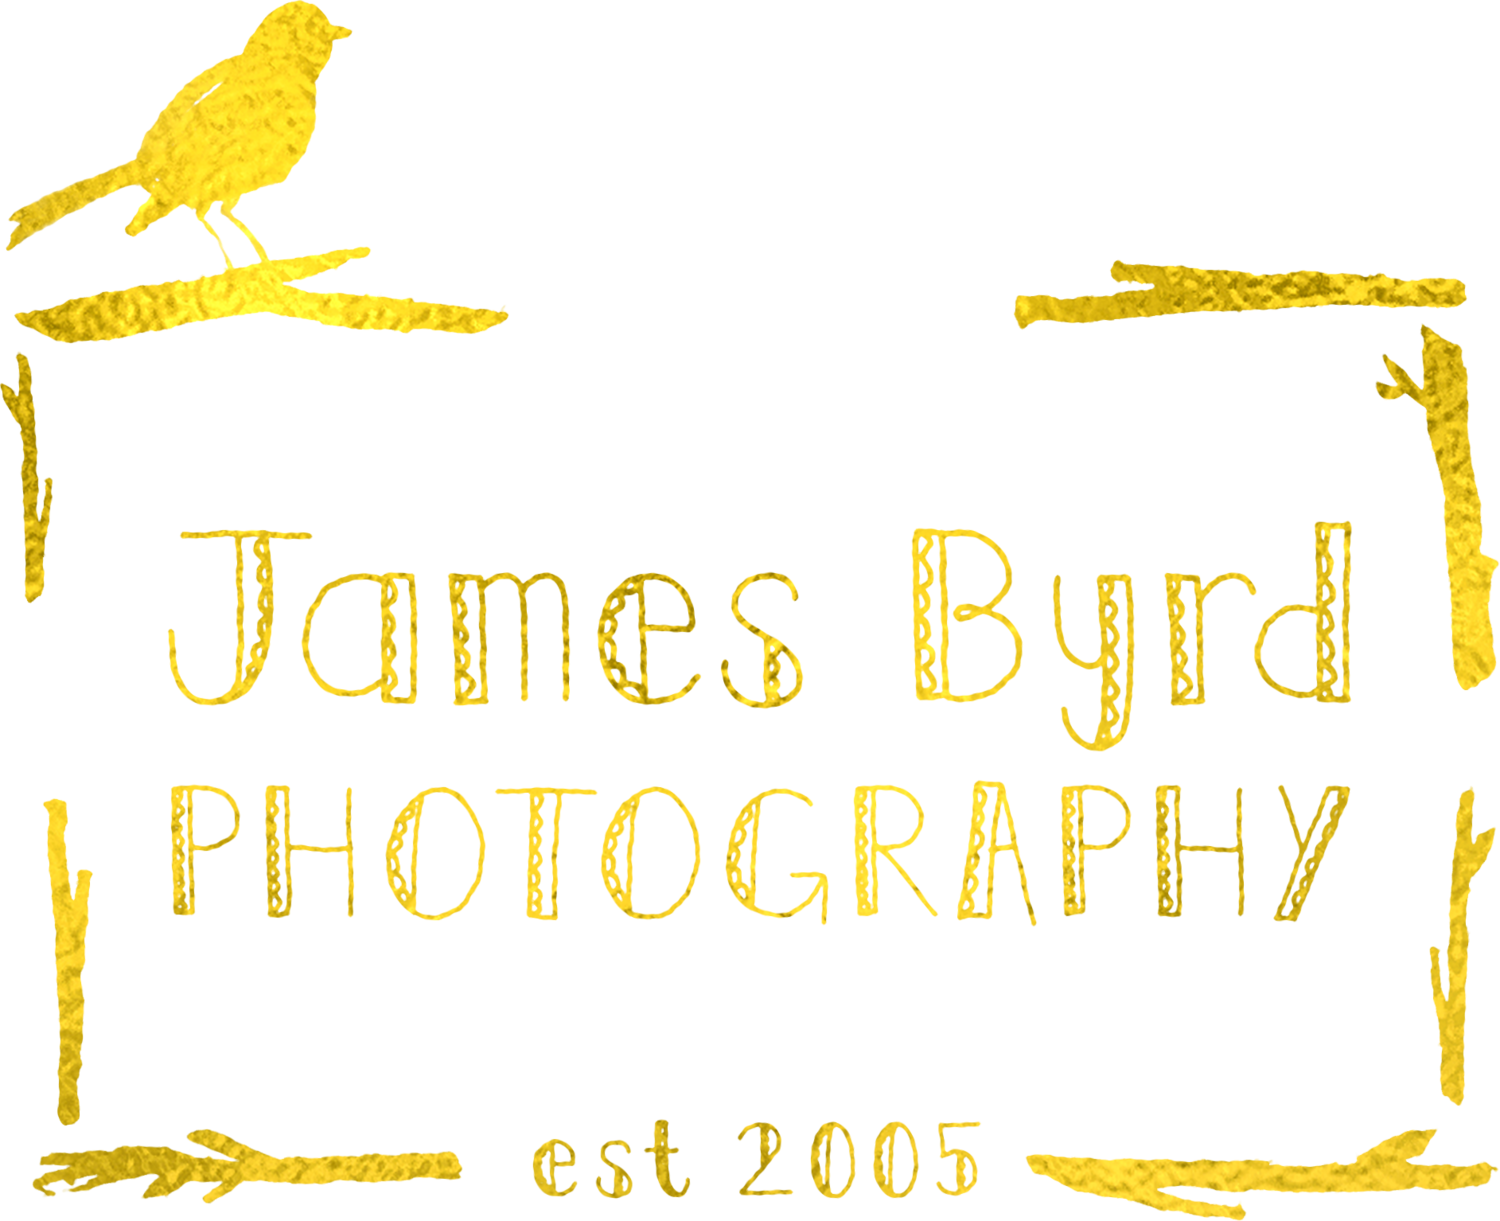 James Byrd Photography